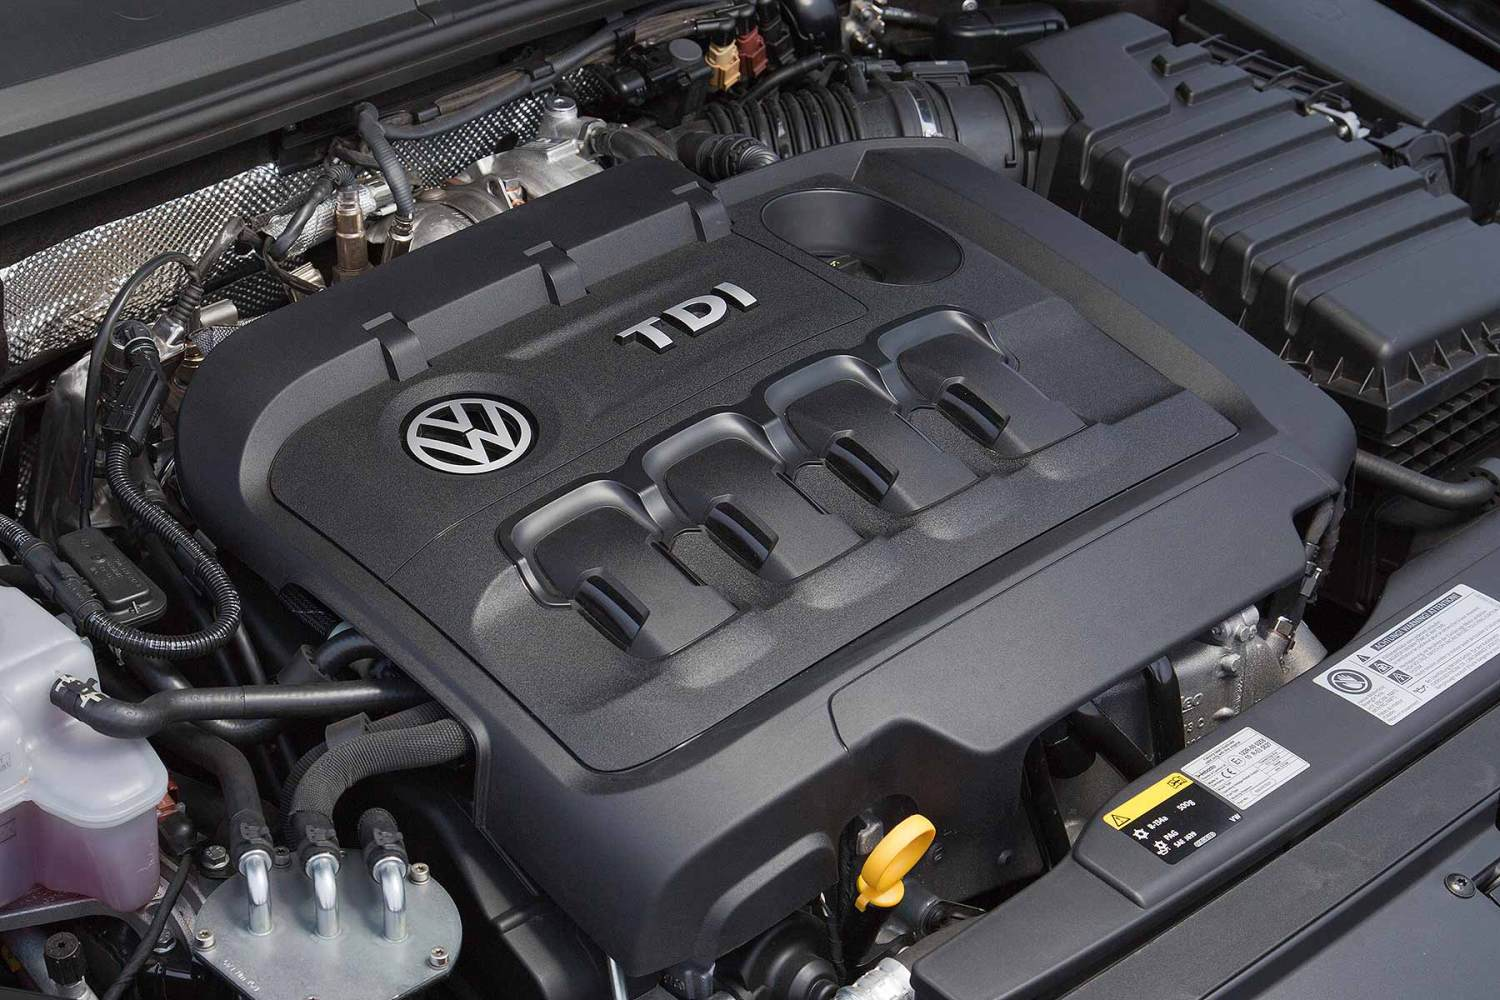 2.0-litre TDI engine